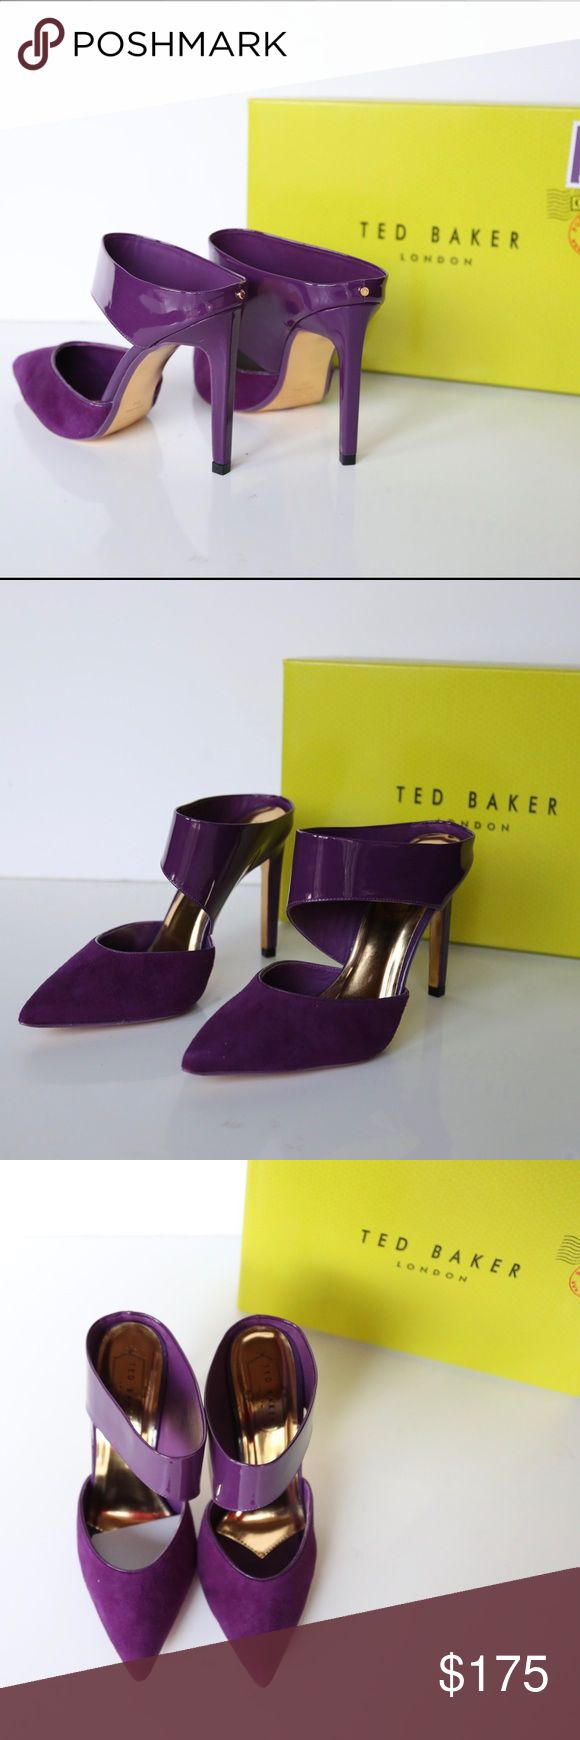 Ted Baker purple pointy toe suede leather heels New in original box Ted Baker heels pointy toe suede and patent leather. Stiletto heel. Sole protective film is still on.  🅿️posh rules only🅿️ 🚫no trades🚫 ✅love to negotiate✅ Ted Baker Shoes Heels